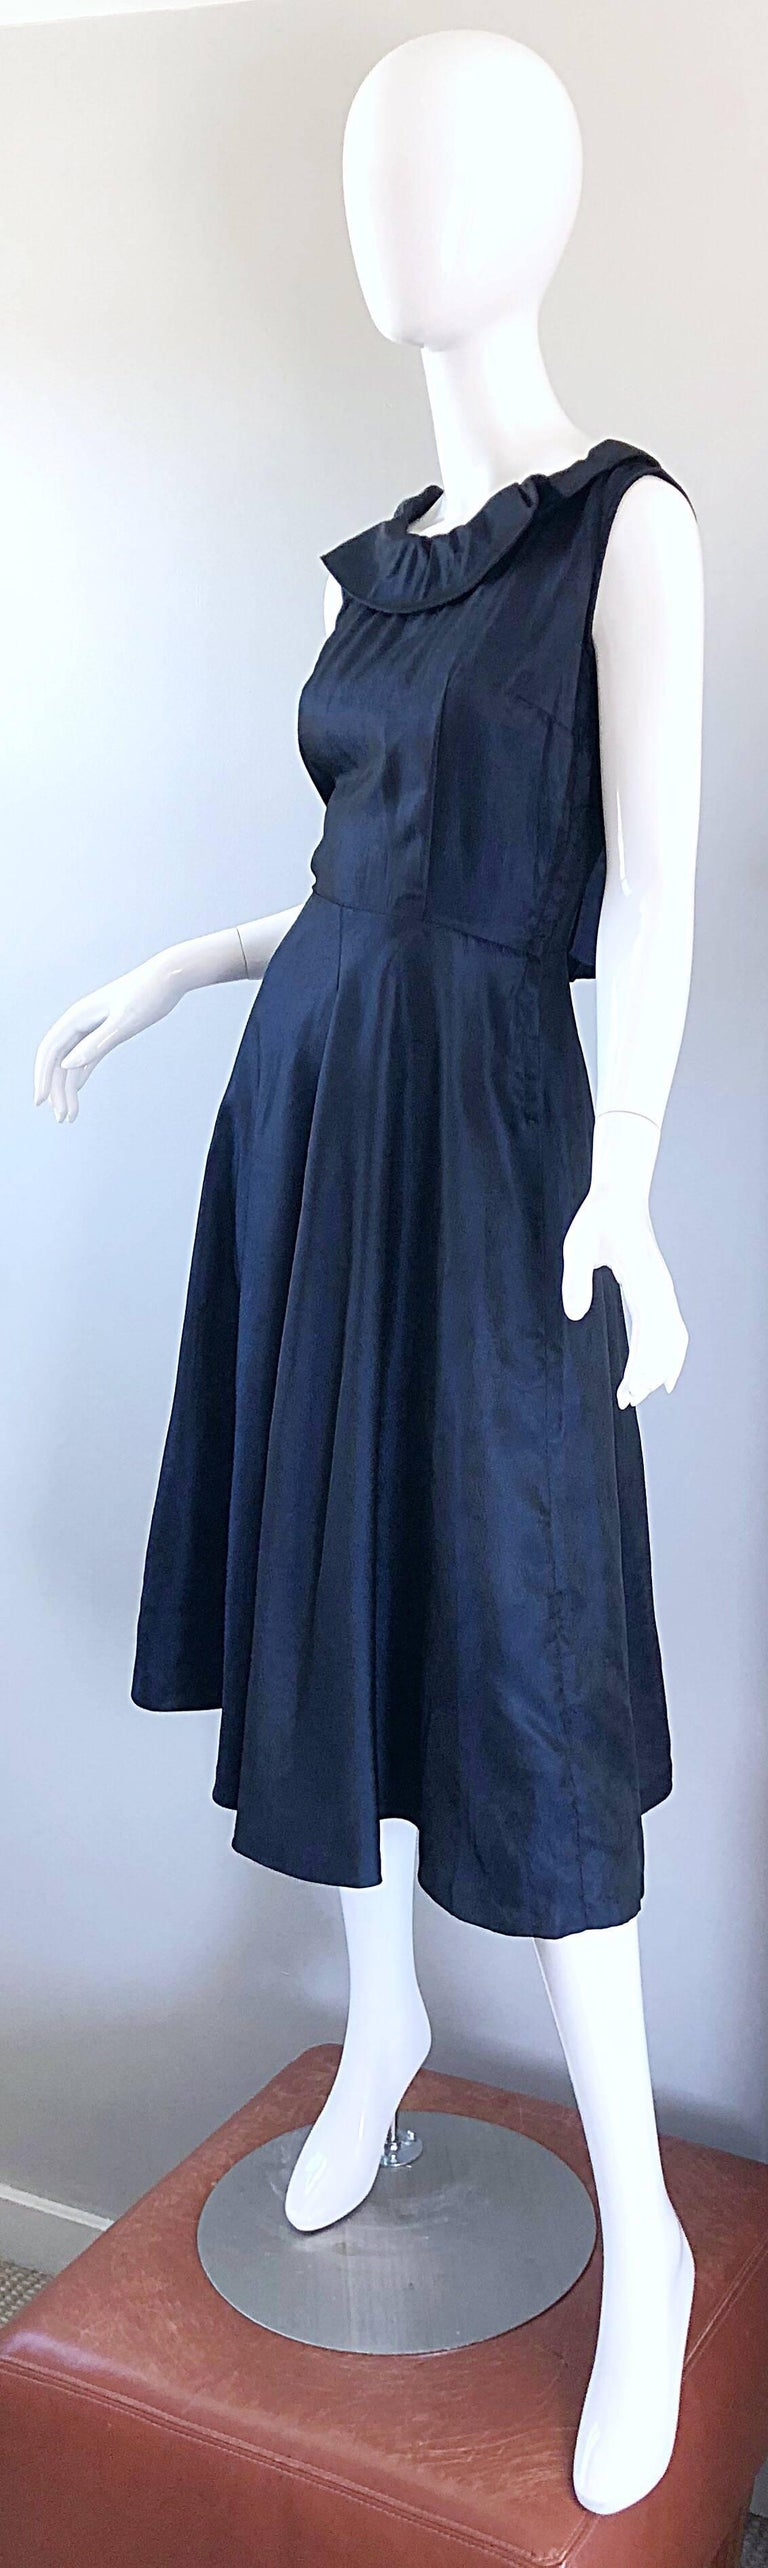 Women's 1950s Navy Midnight Blue Fit n ' Flare Vintage 50s Demi Couture Silk Dress For Sale